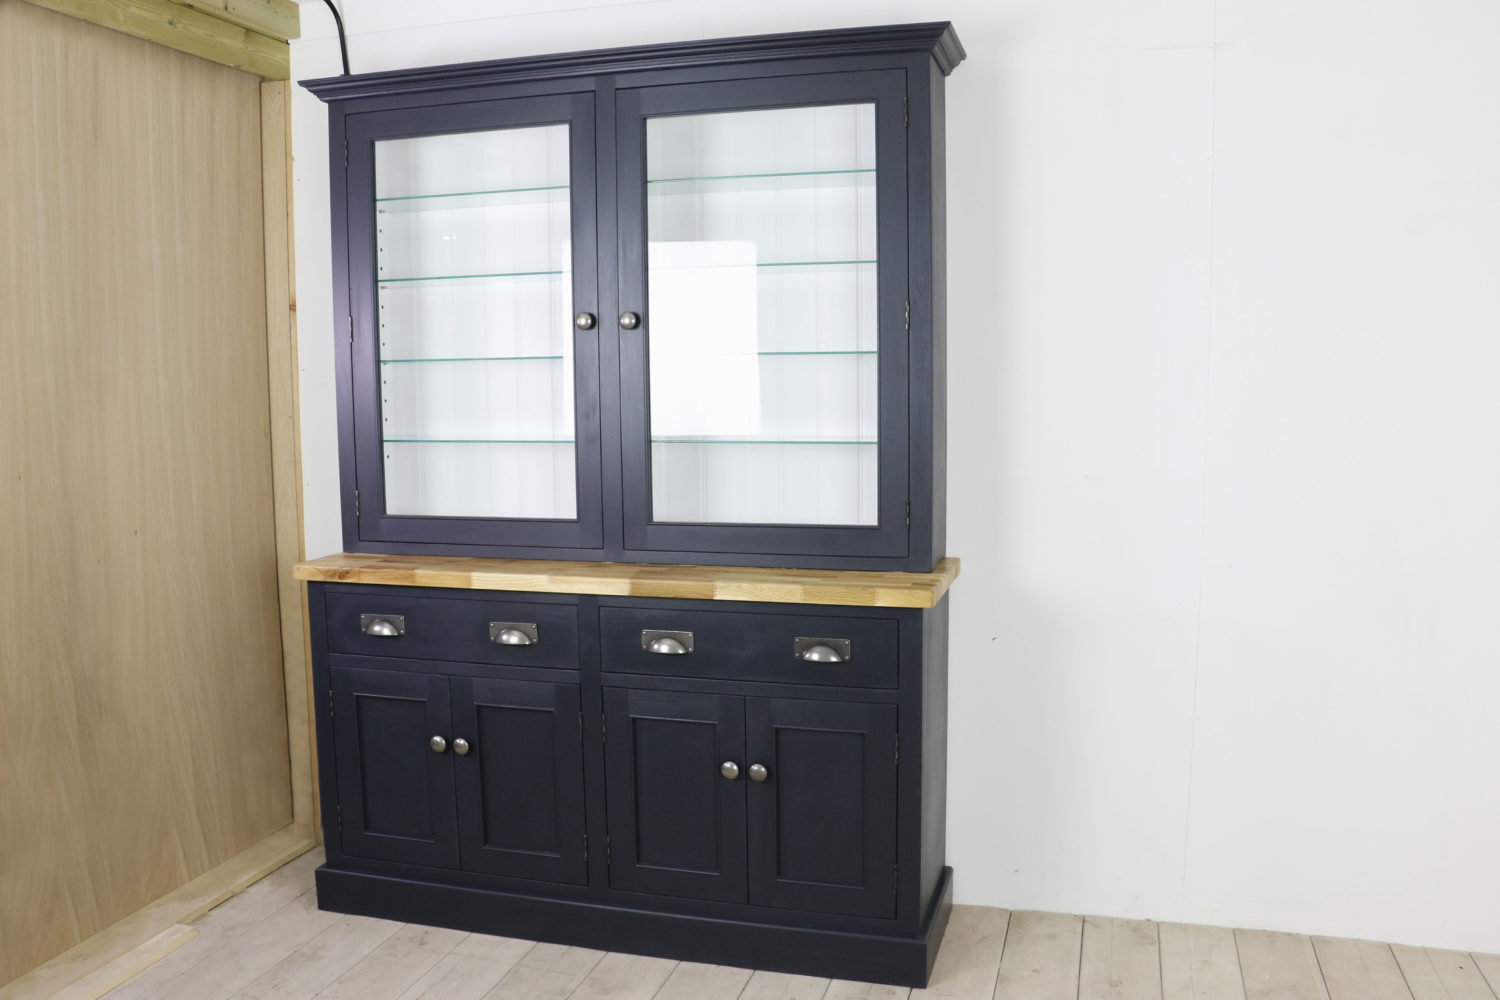 Glazed Welsh dresser in the Mudd & Co factory sale 2019/2020. Handcrafted kitchen and home furniture